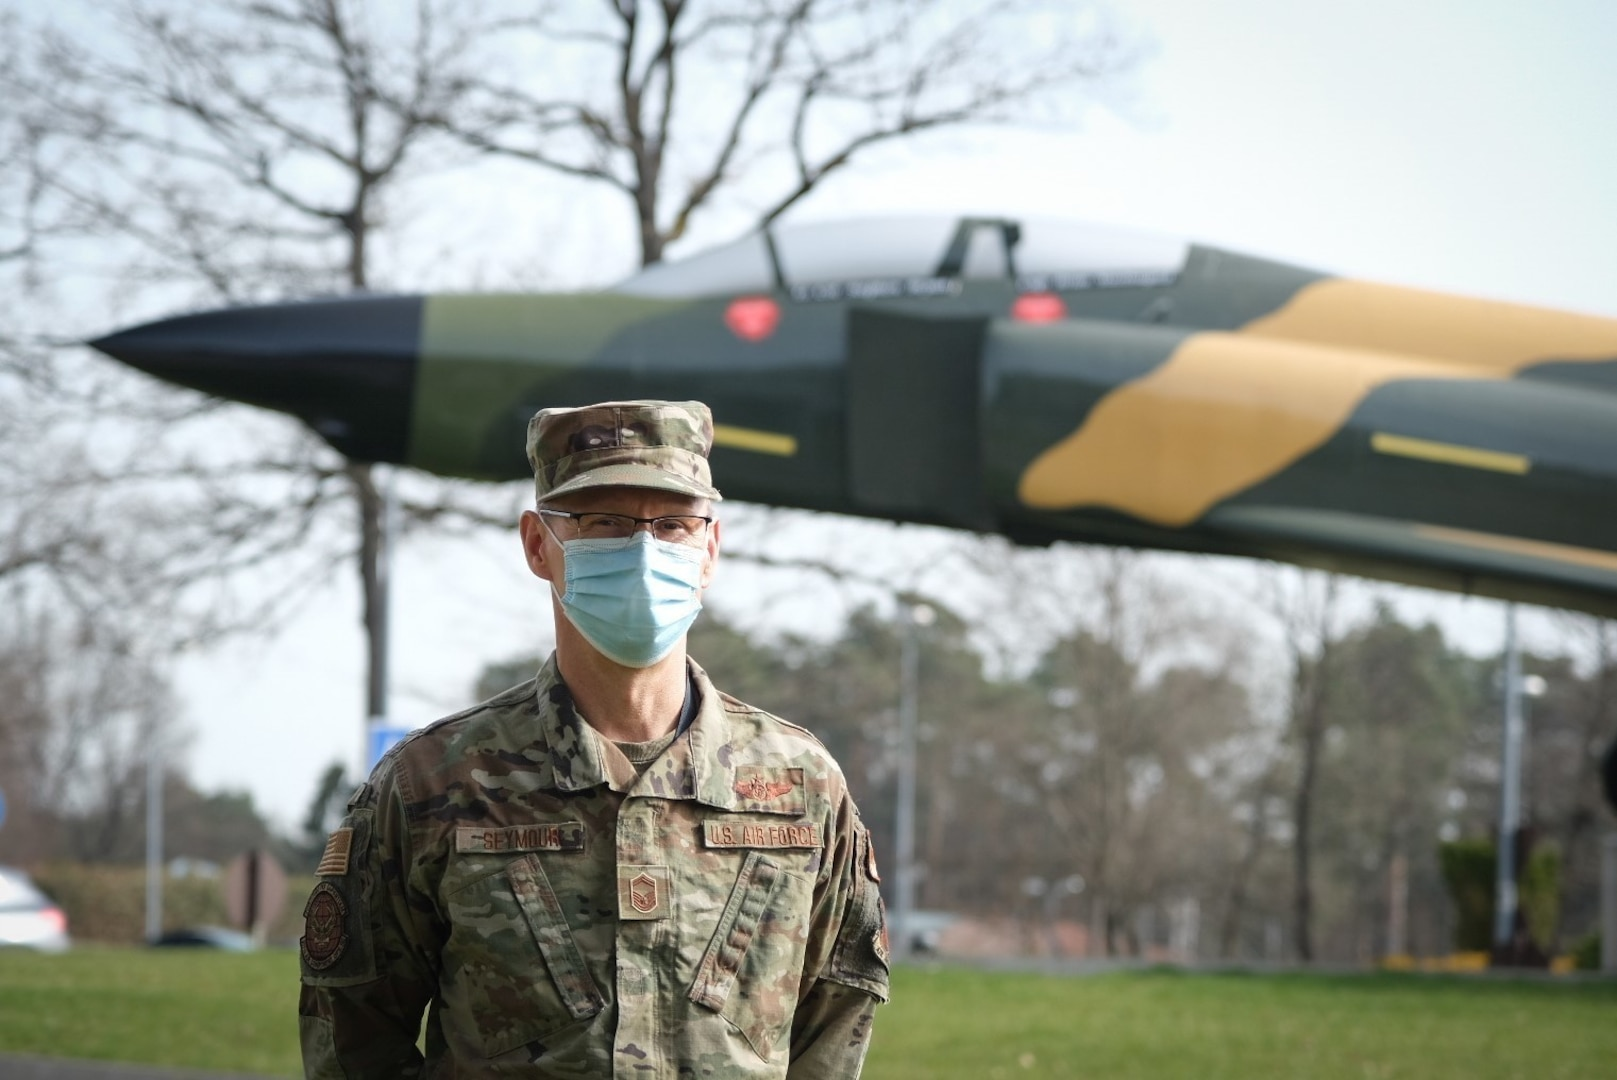 U.S. Air Force Senior Master Sgt. Brad Seymour, technician lead, chief of combat operations for the 603d Air Operations Center, stands for a portrait near a static display F-4 Phantom at Ramstein Air Base, Germany, April 1, 2021. Seymour is a member of the Michigan Air National Guard's 110th Wing, 217th Air Operations Group.